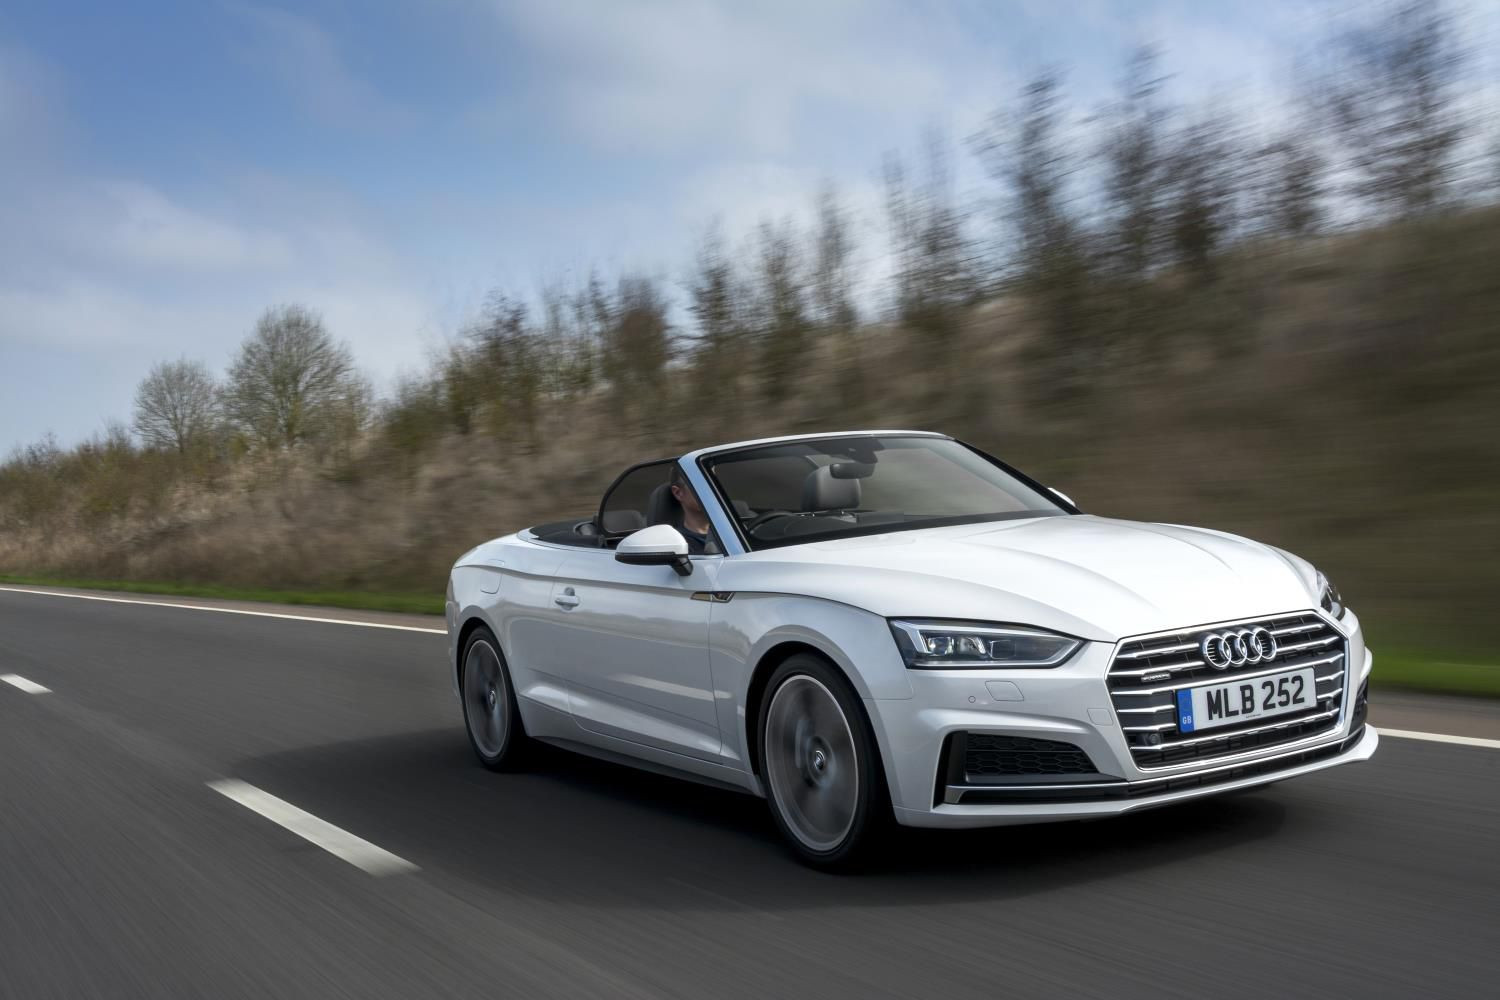 White Audi A5 cabriolet speeding towards you